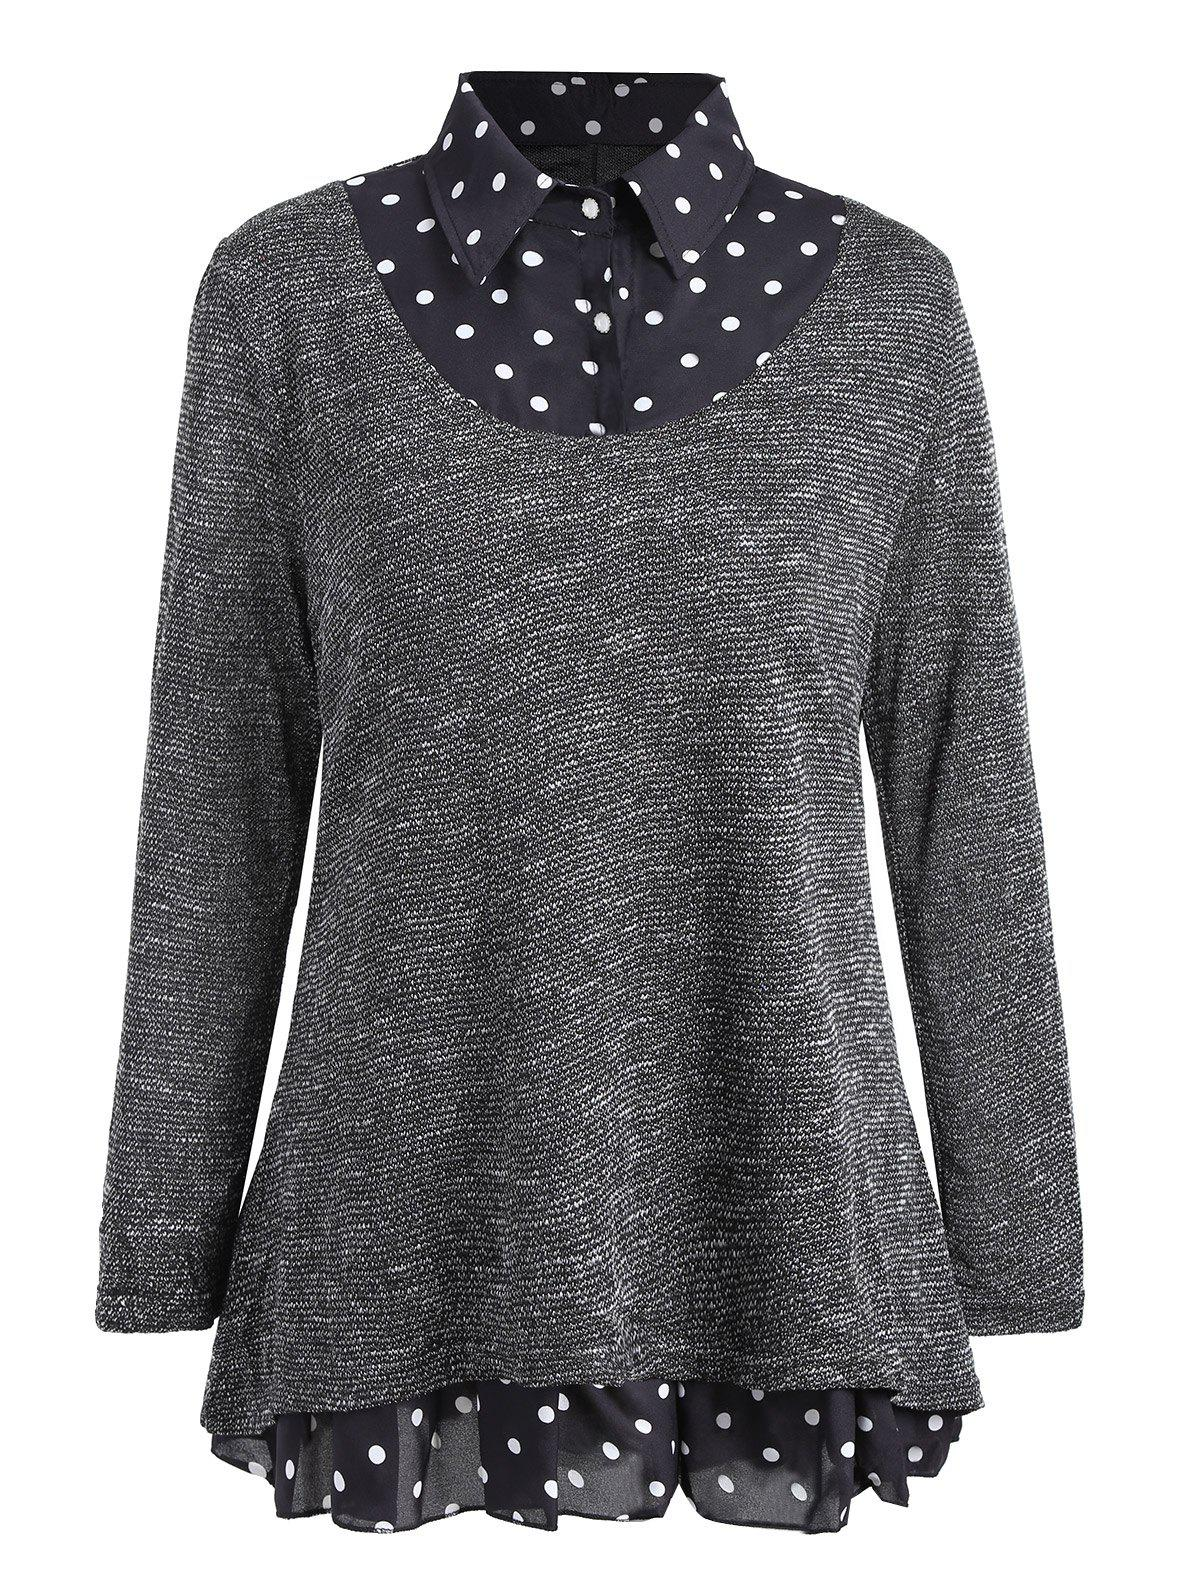 Plus Size Overlay Polka Dot Knit TopWOMEN<br><br>Size: 4XL; Color: GRAY; Type: Pullovers; Material: Acrylic,Polyester; Sleeve Length: Full; Collar: Shirt Collar; Style: Fashion; Season: Fall,Spring; Pattern Type: Polka Dot; Weight: 0.3300kg; Package Contents: 1 x Knit Top;